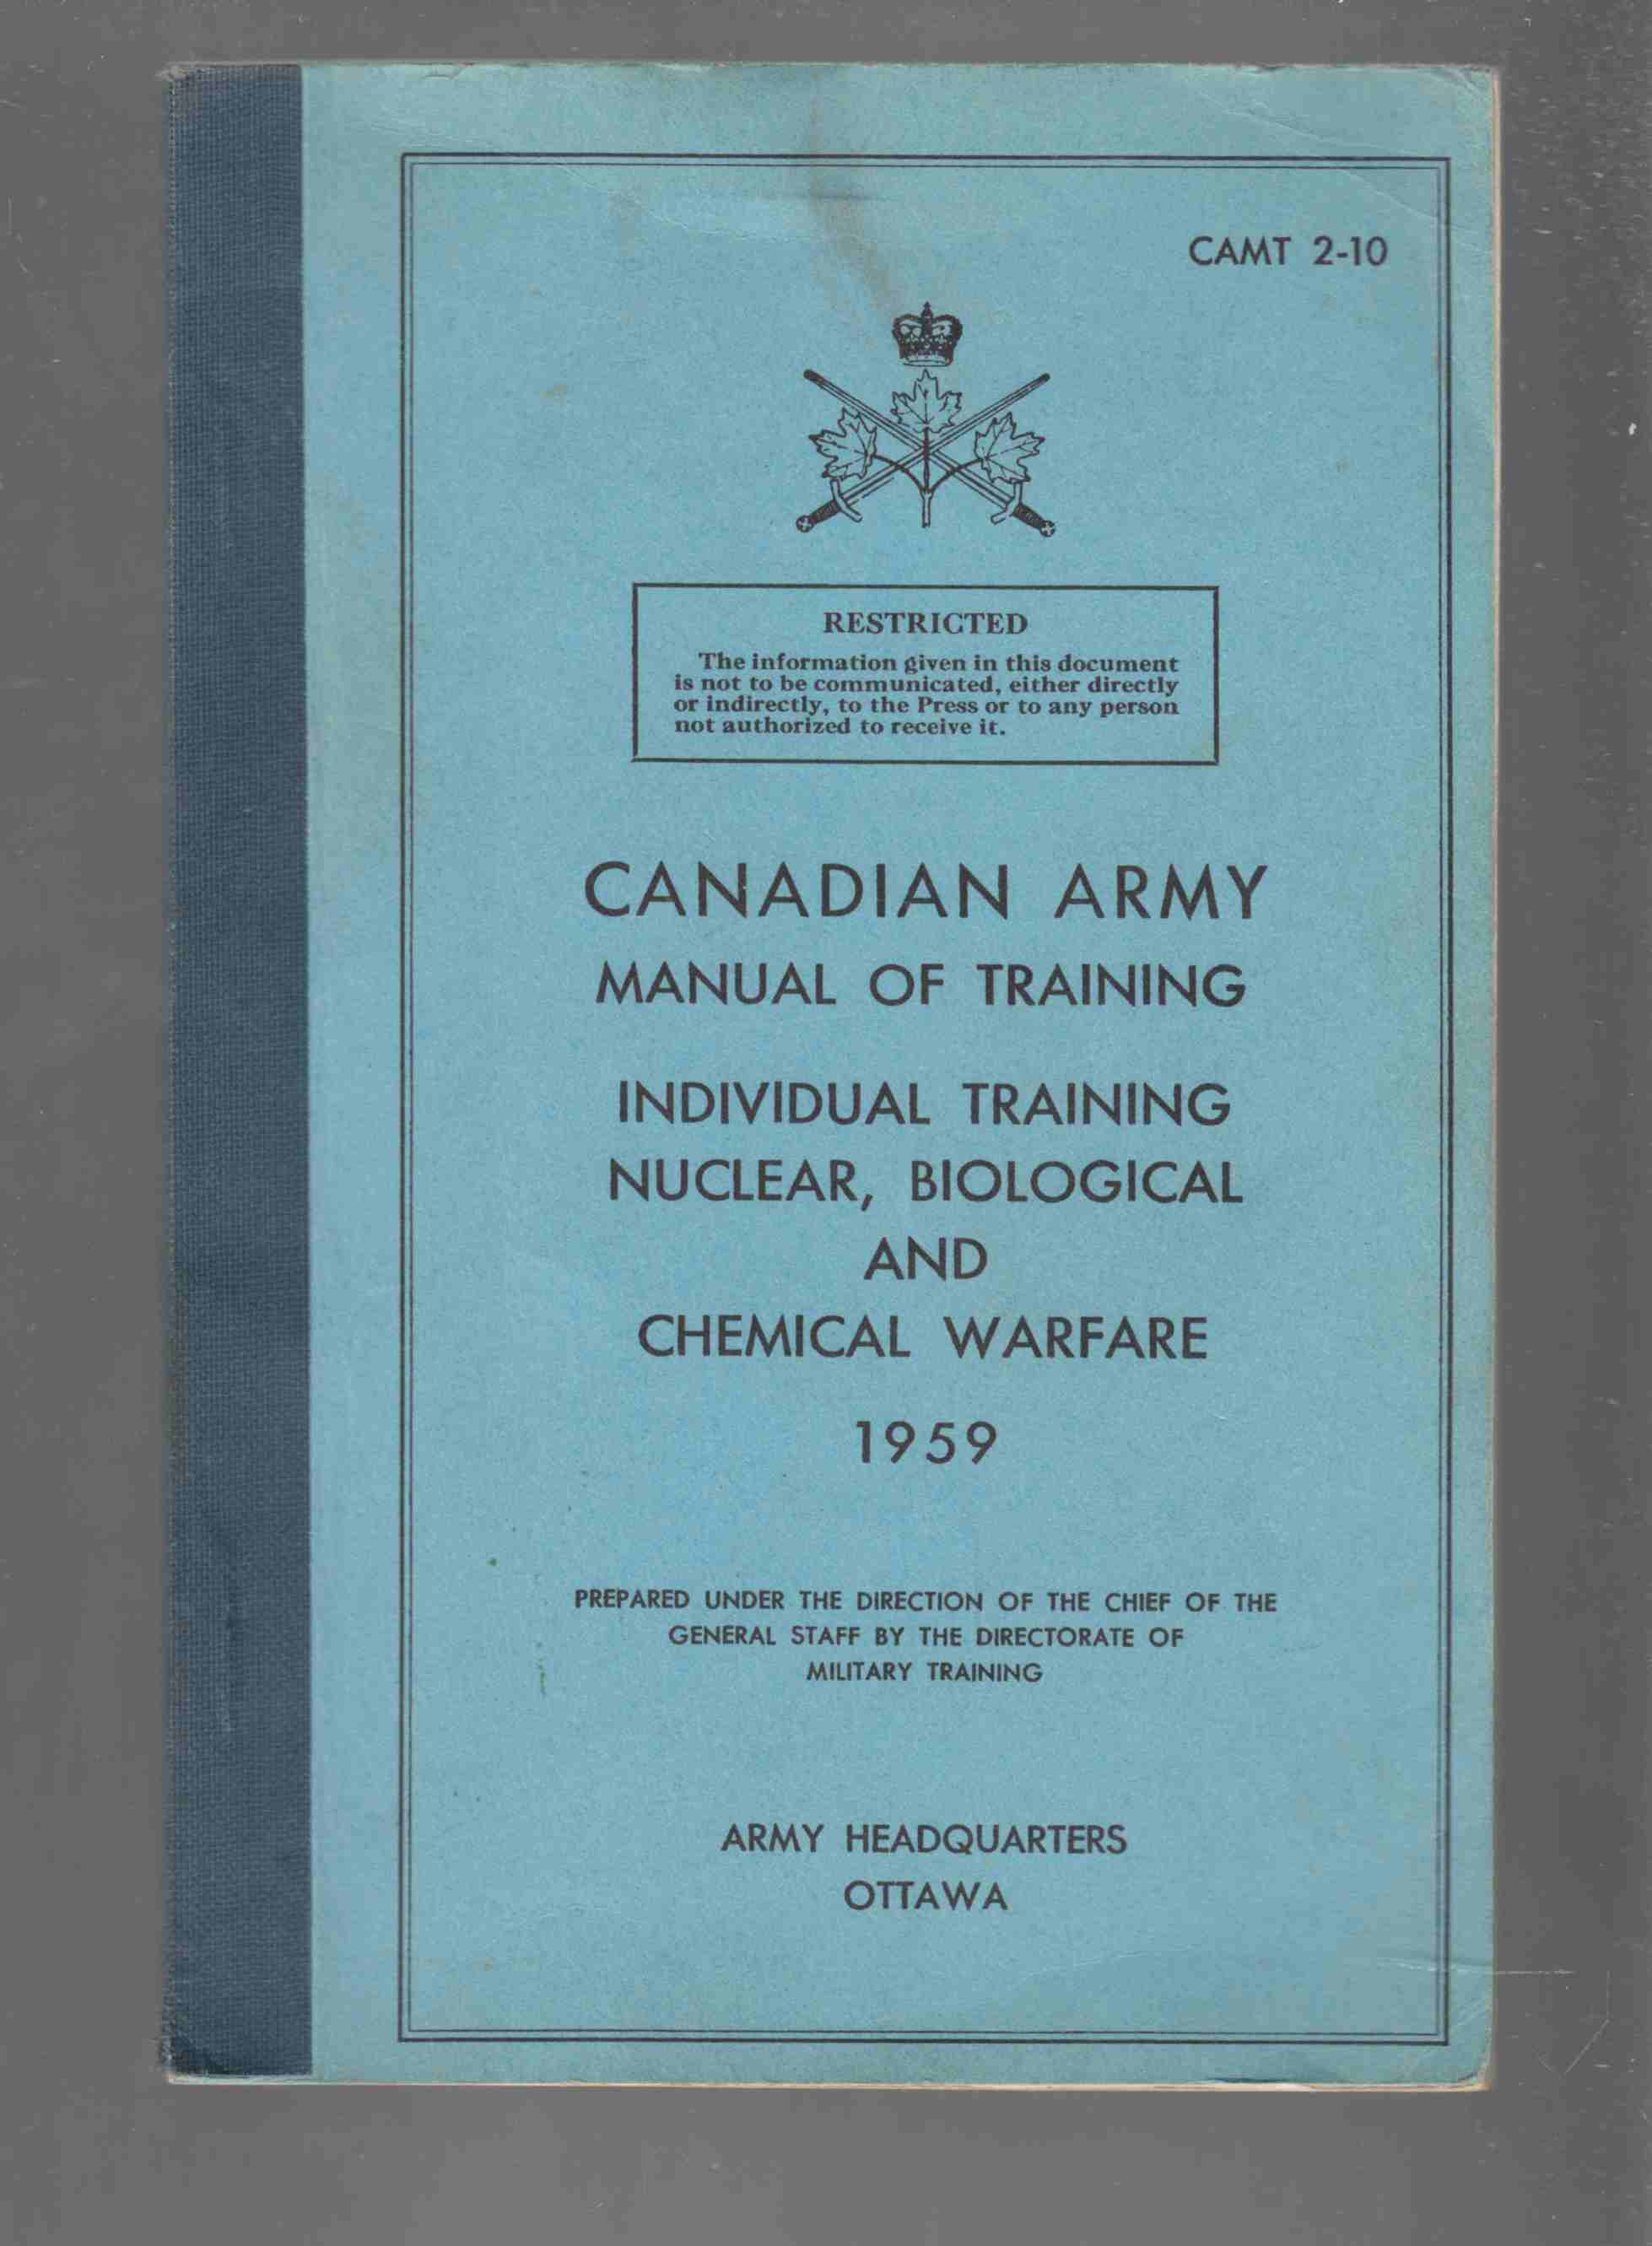 Image for Canadian Army Manual of Training Individual Training Nuclear, Biological and Chemical Warfare 1959 CAMT 2-10